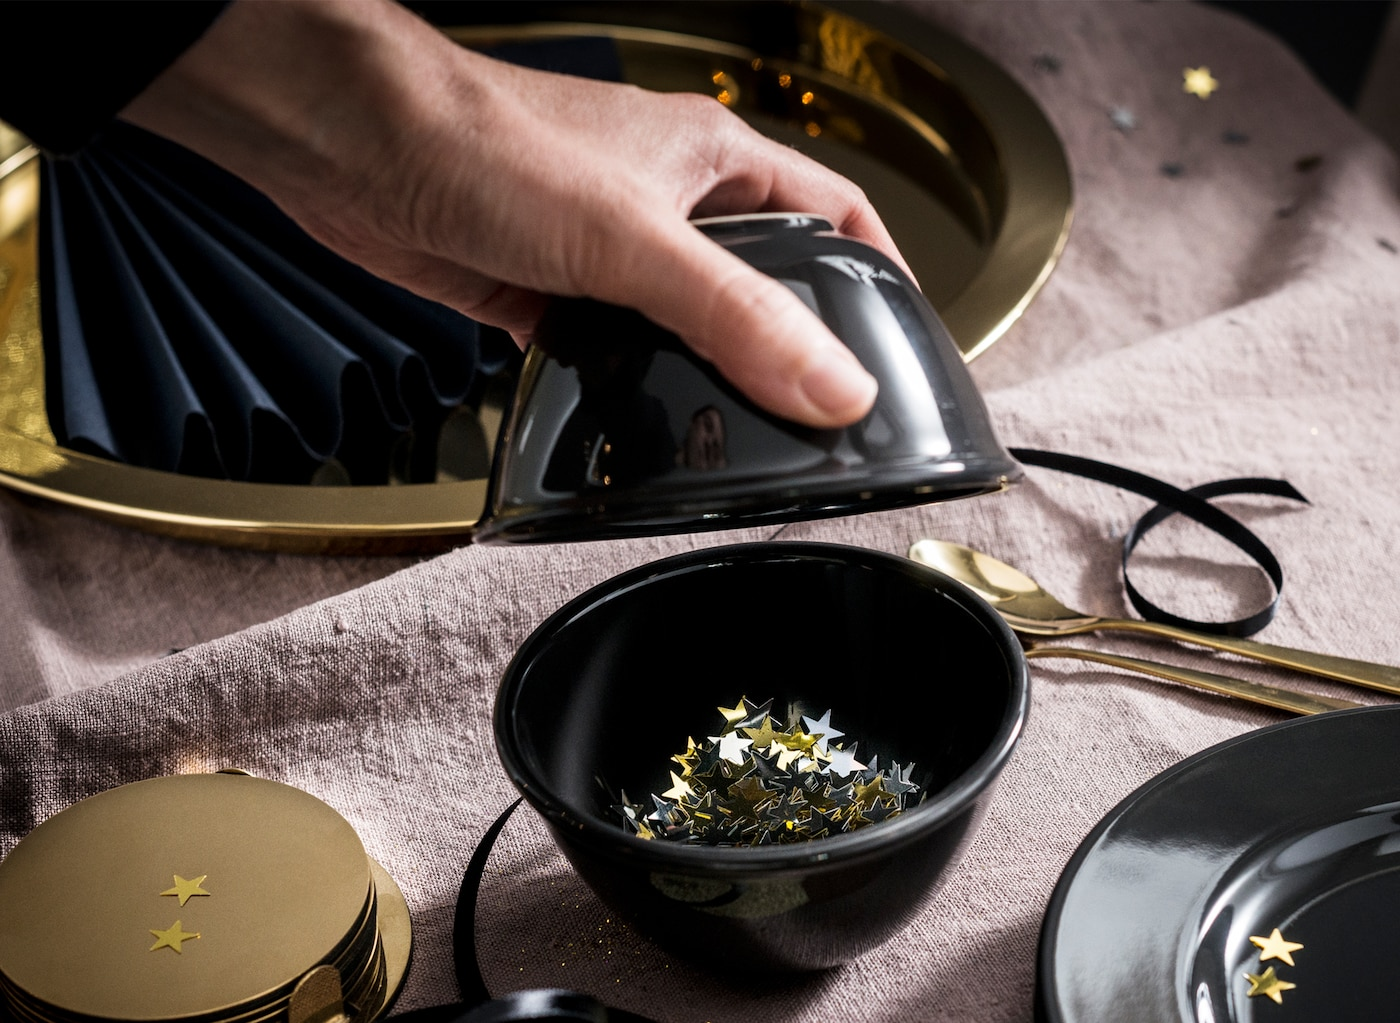 A hand tipping golden stars into a black bowl on a table set with golden and black decorations, plates, trays and cutlery.